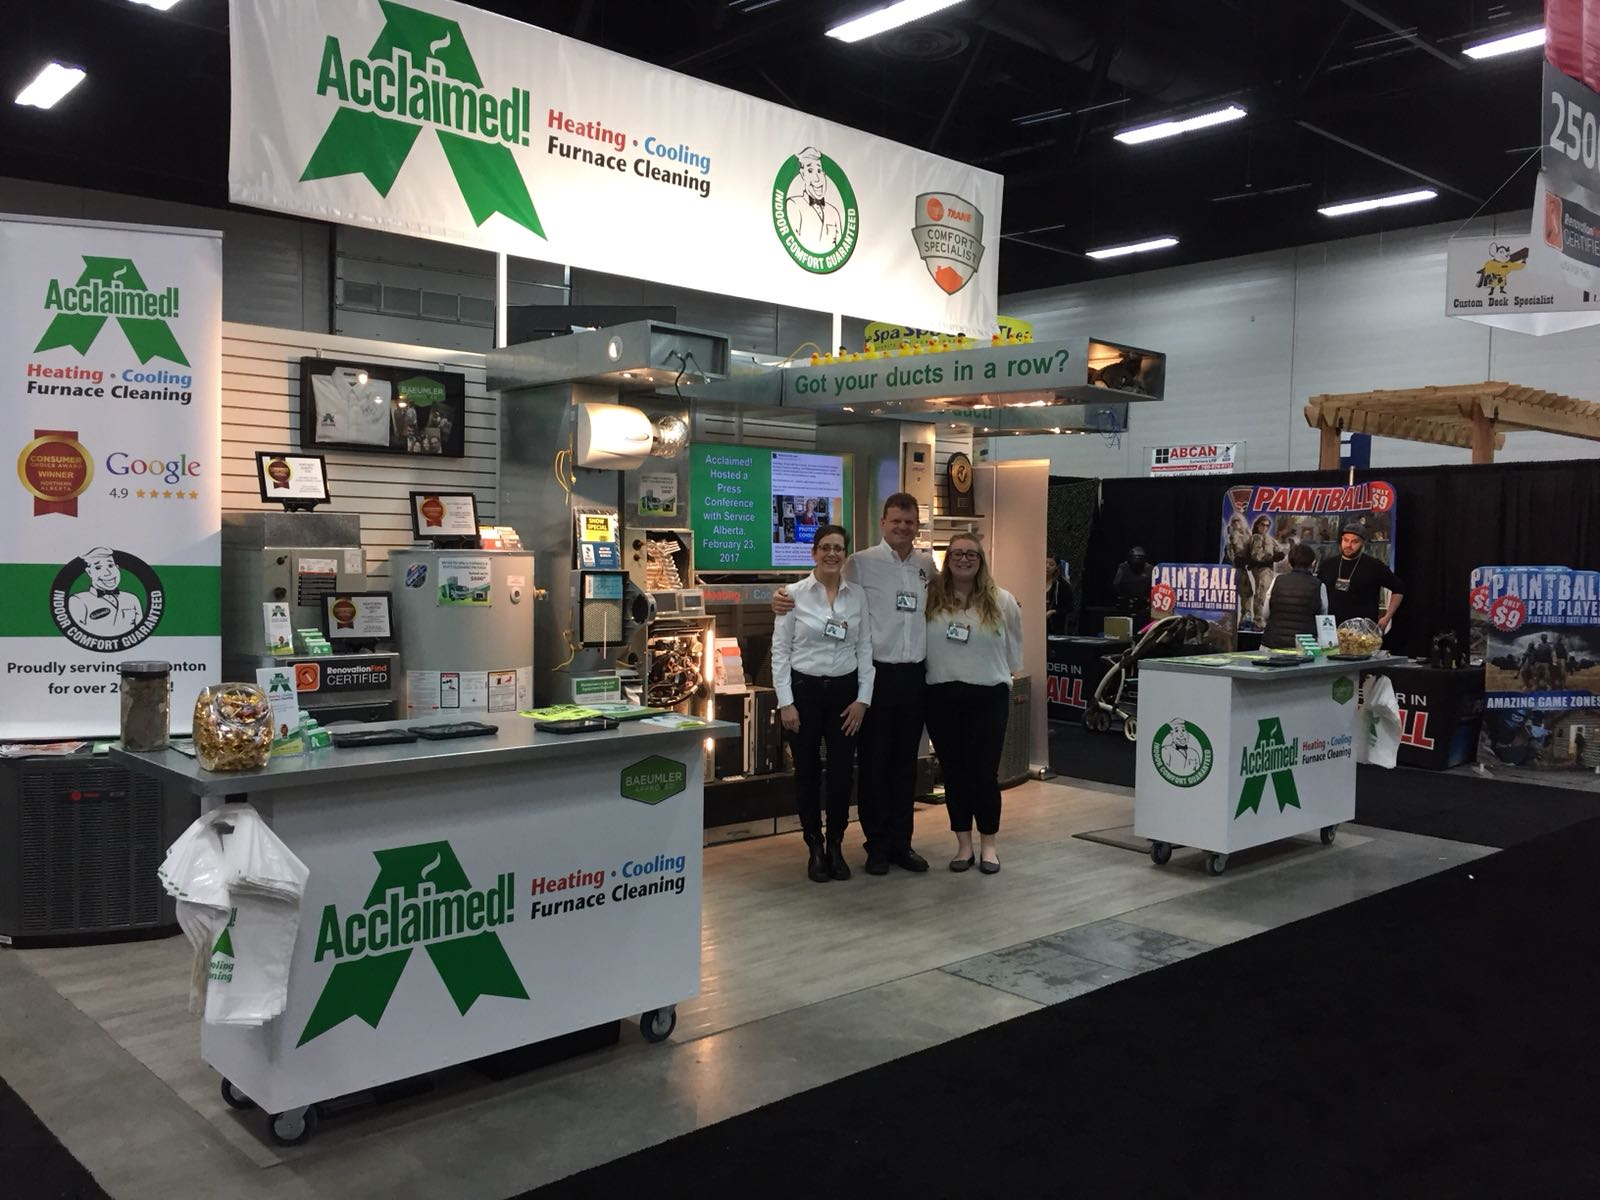 Home & Garden Show 2018 Acclaimed! Heating Cooling Furnace Cleaning